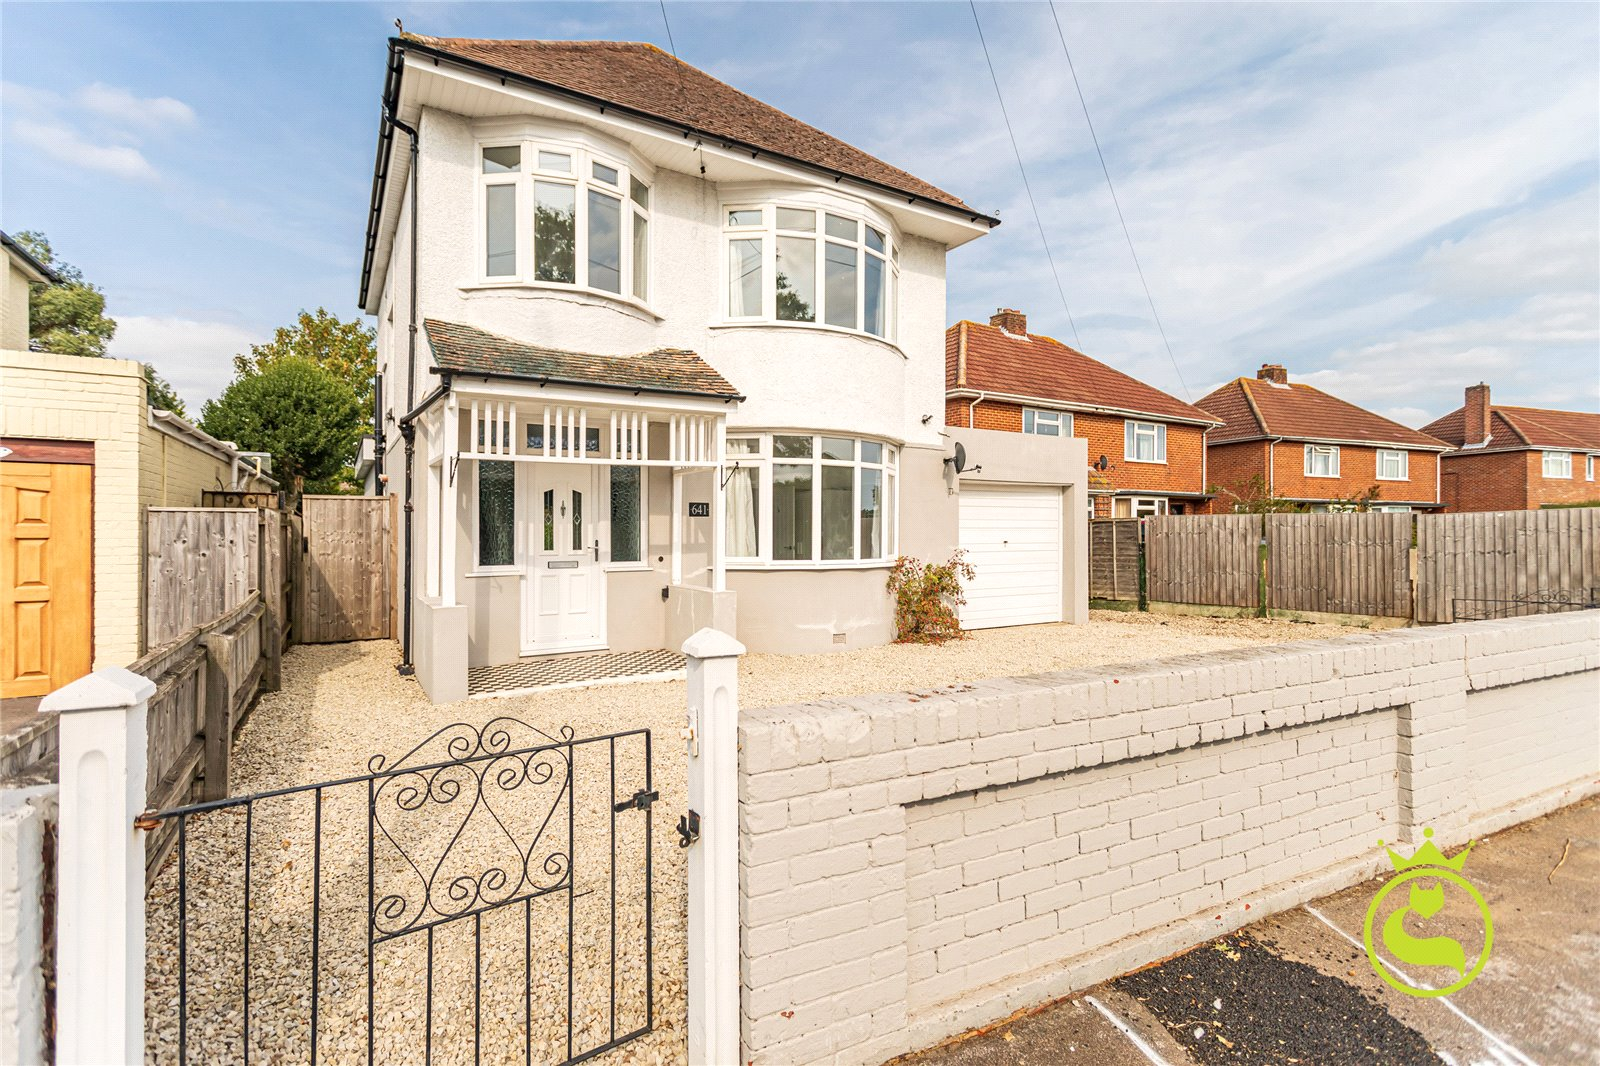 4 bed house for sale in Castle Lane West, Bournemouth 0